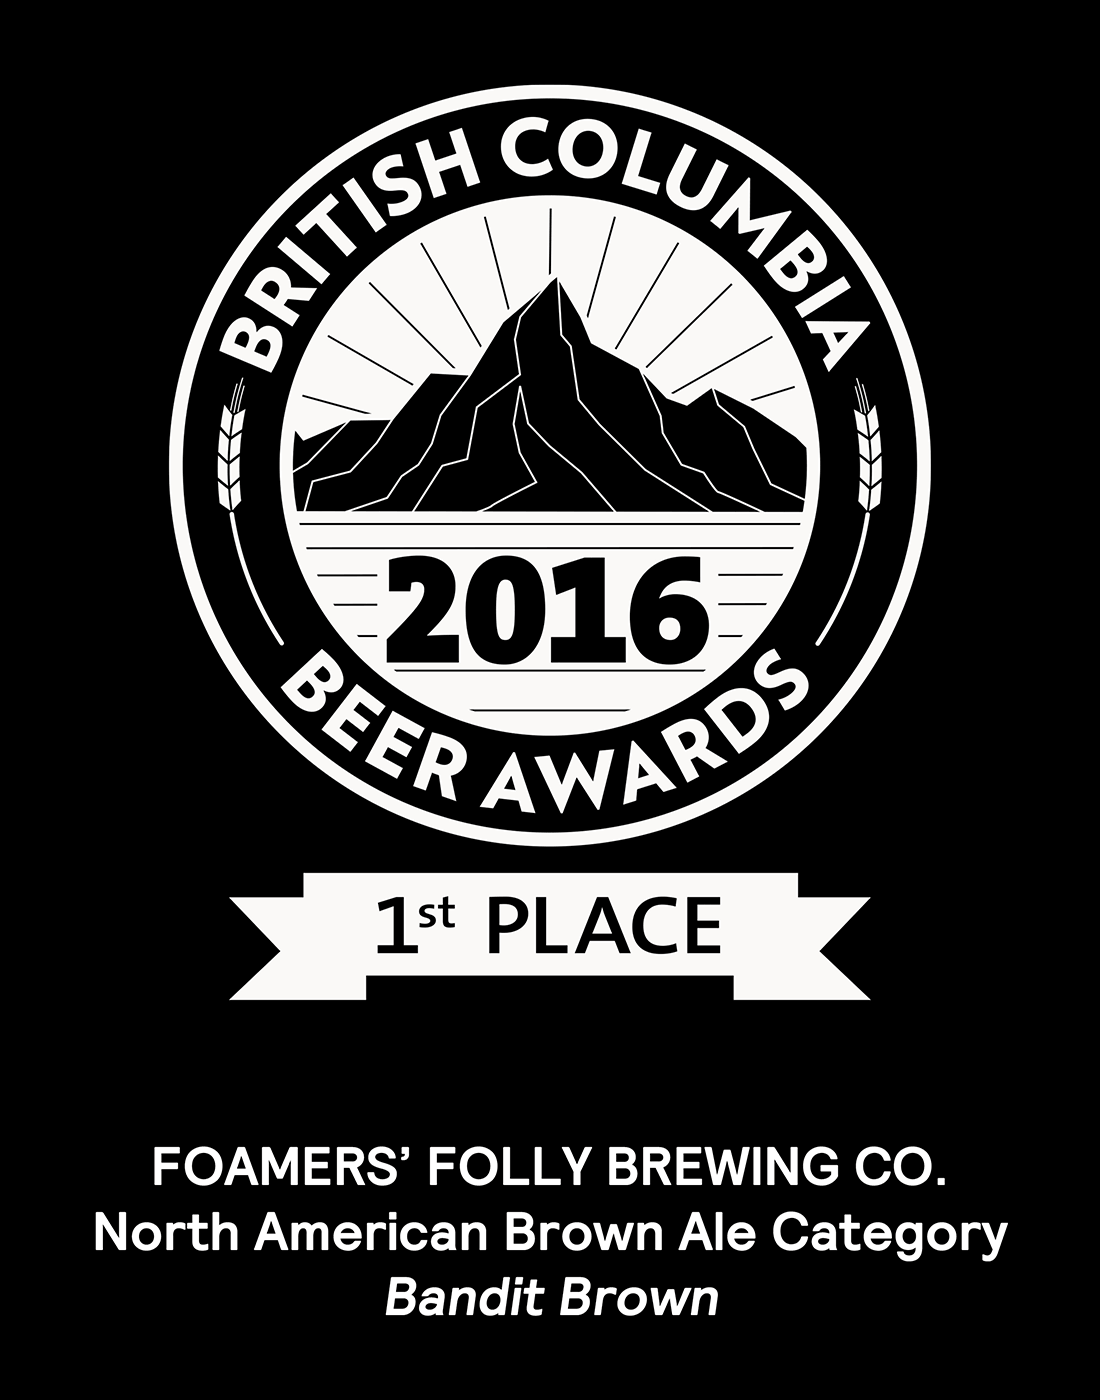 BC Beer Awards 2016, 1st Place in the North American Brown Ale Category for our Bandit Brown